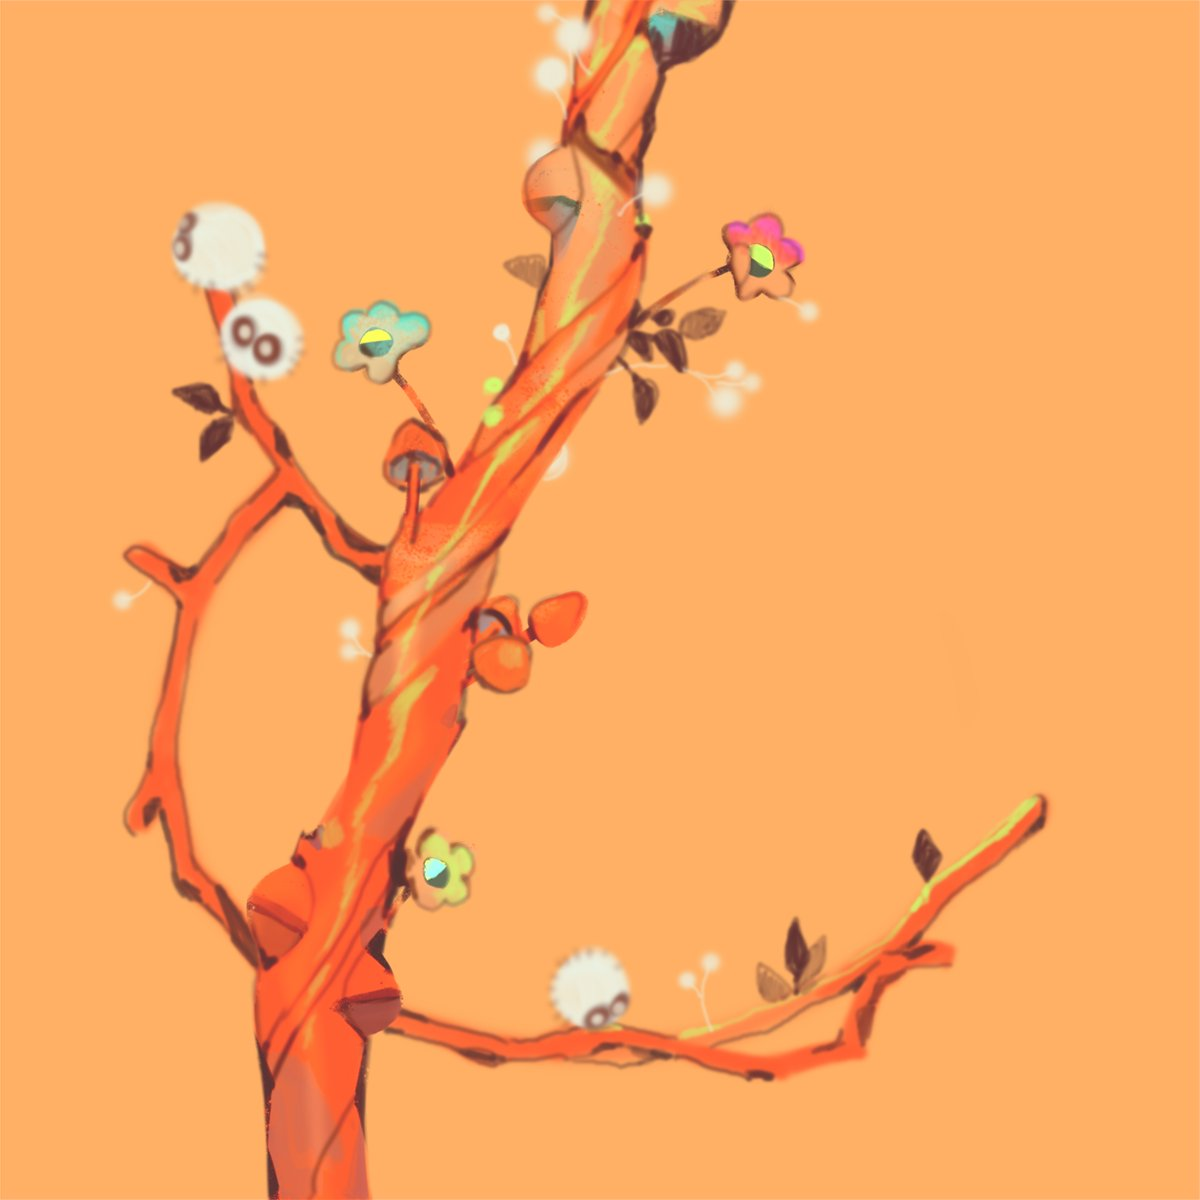 Branch Orange and Branch Green; scattered debris becoming home for little things....